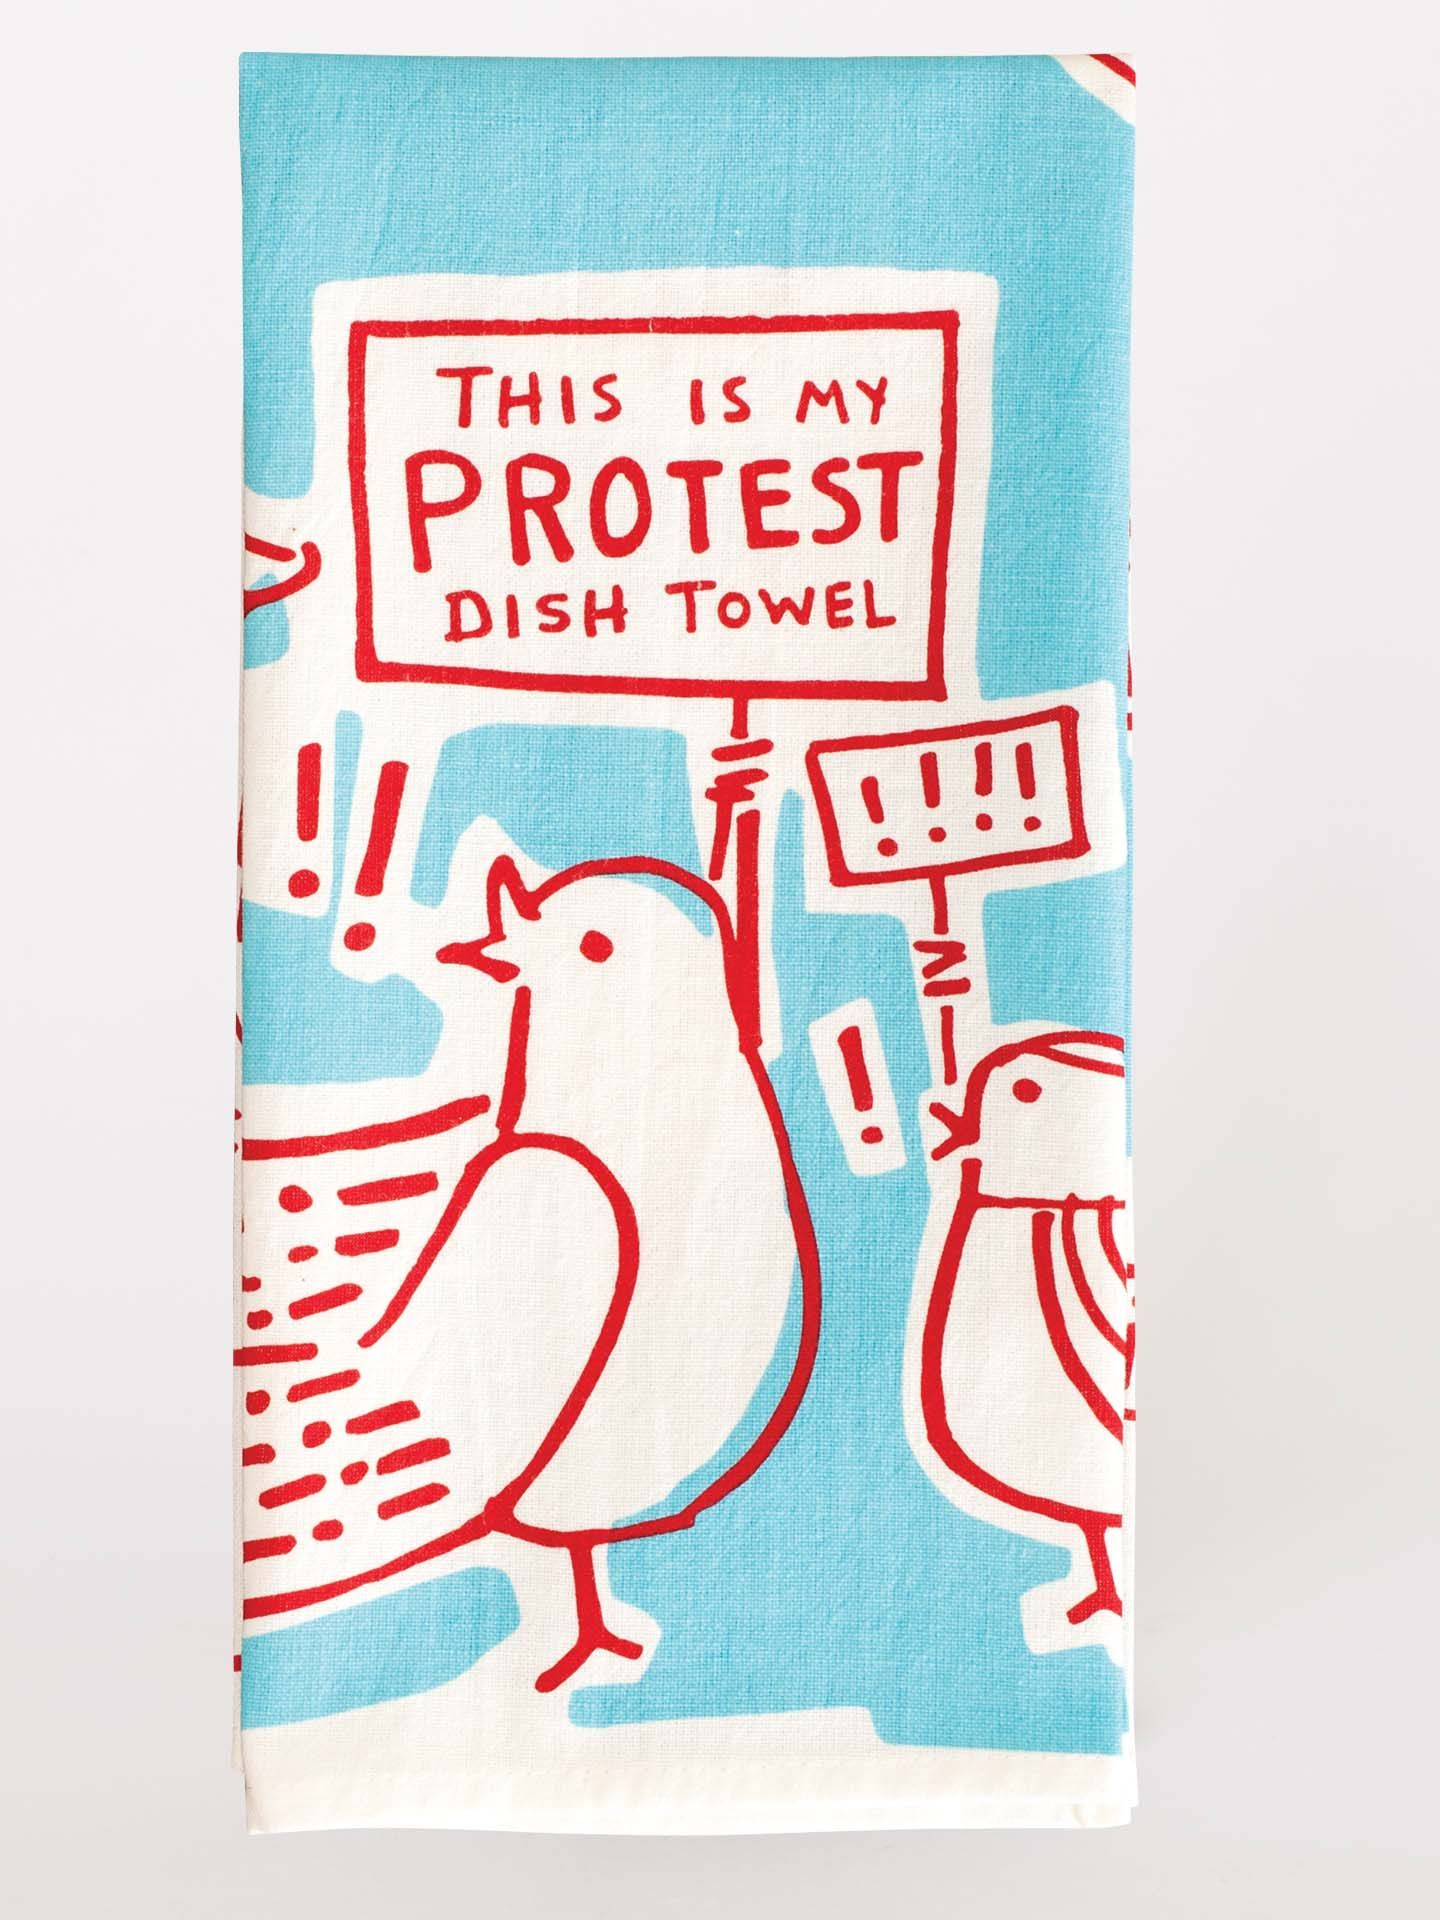 My protest dish towel